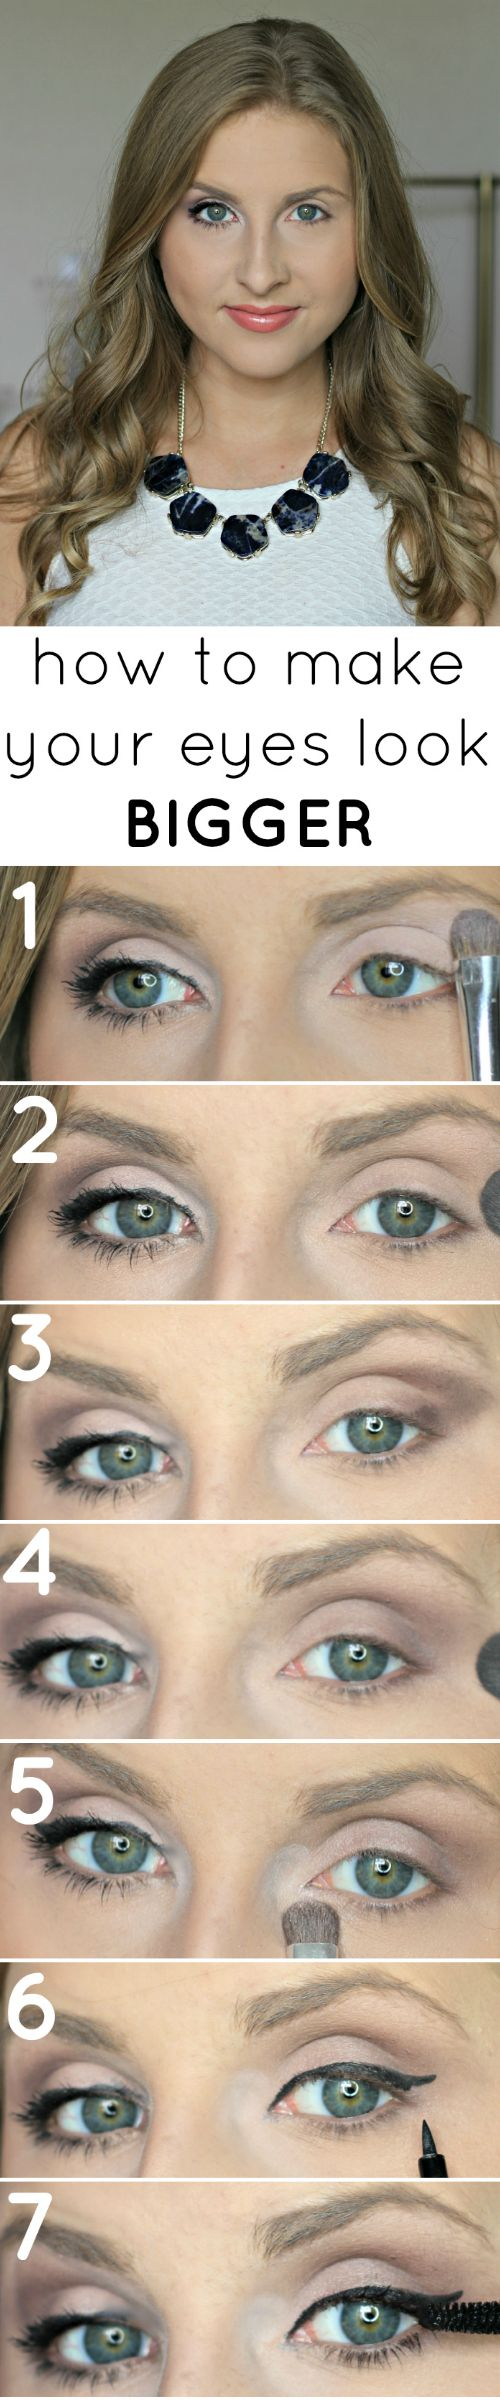 Learn how you can make your eyes look HUGE with this easy makeup technique! #EyeBooster #spon